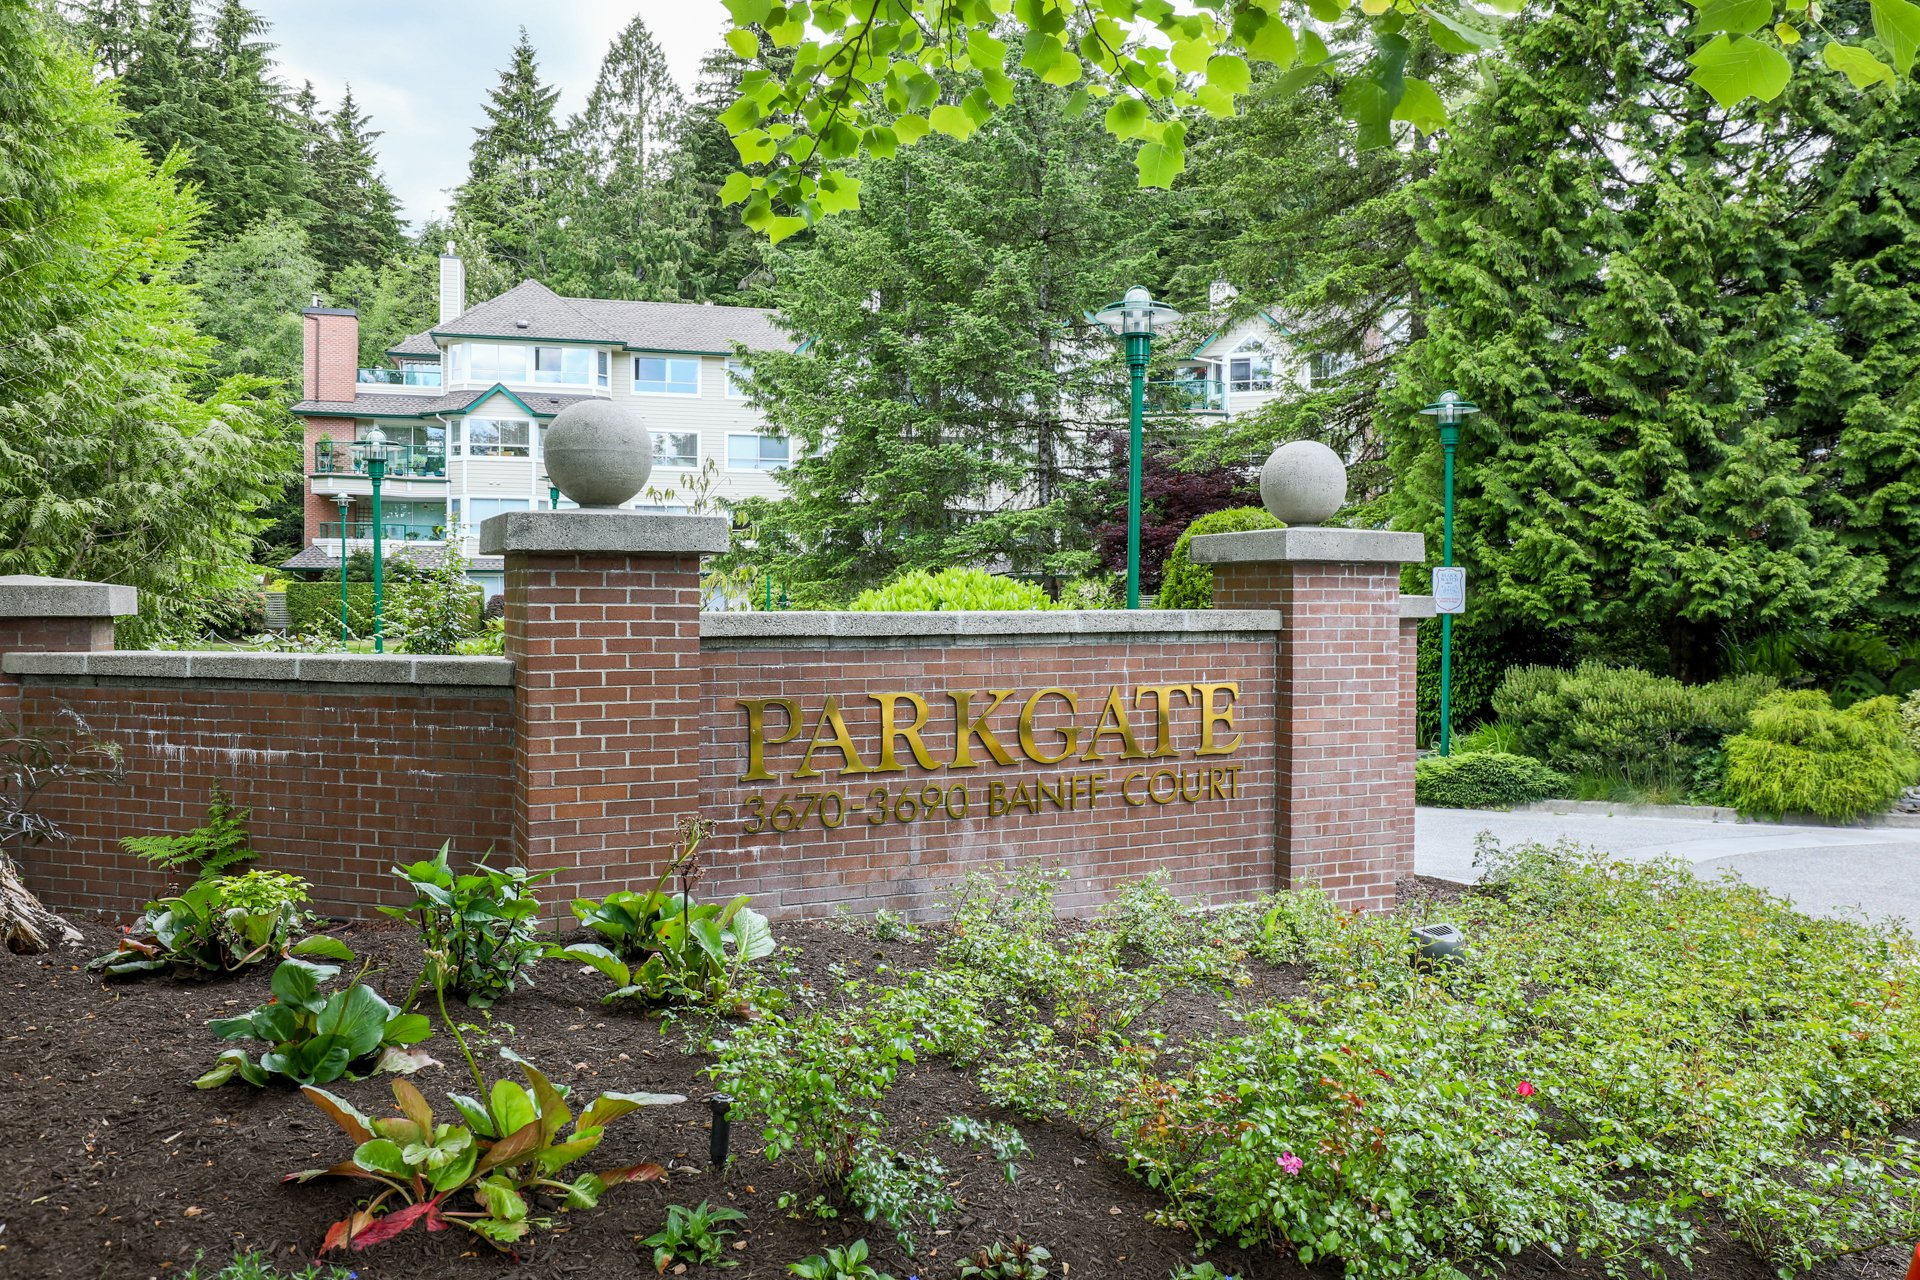 Parkgate Manor - 3670 Banff Ct | Condos For Sale + New Listing Alerts